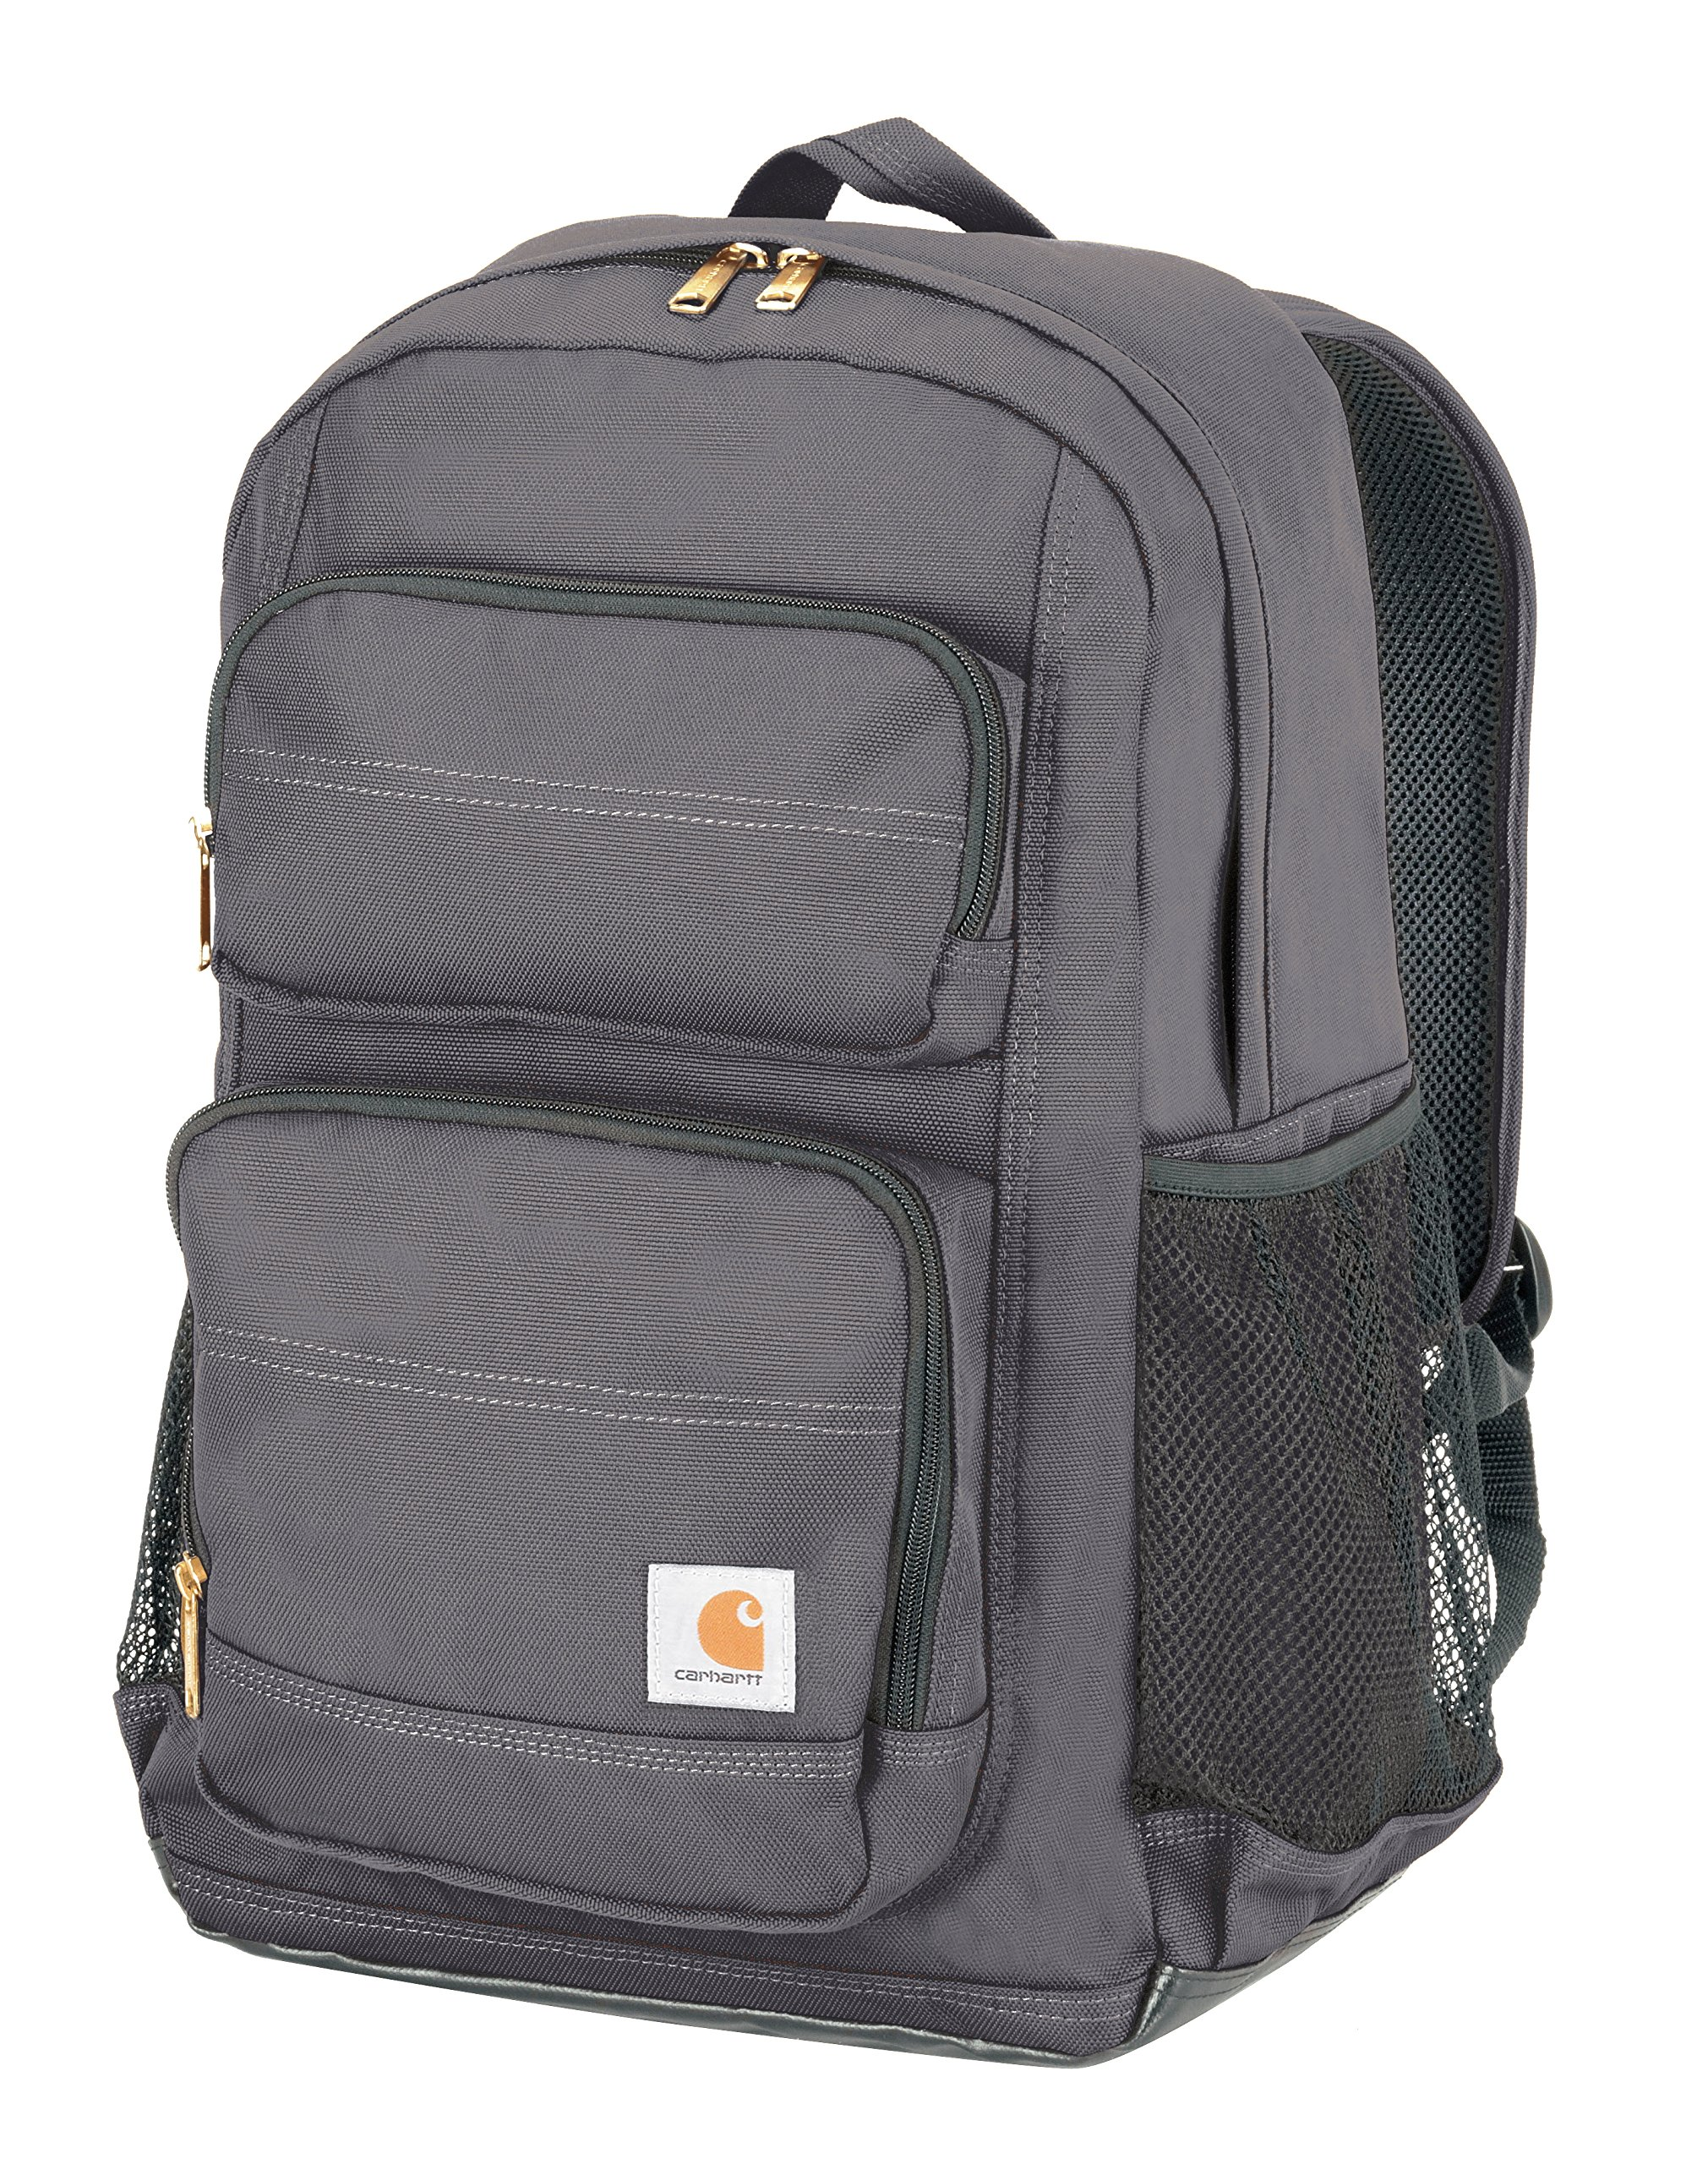 Carhartt Legacy Standard Work Backpack with Padded Laptop Sleeve and Tablet Storage, Grey by Carhartt